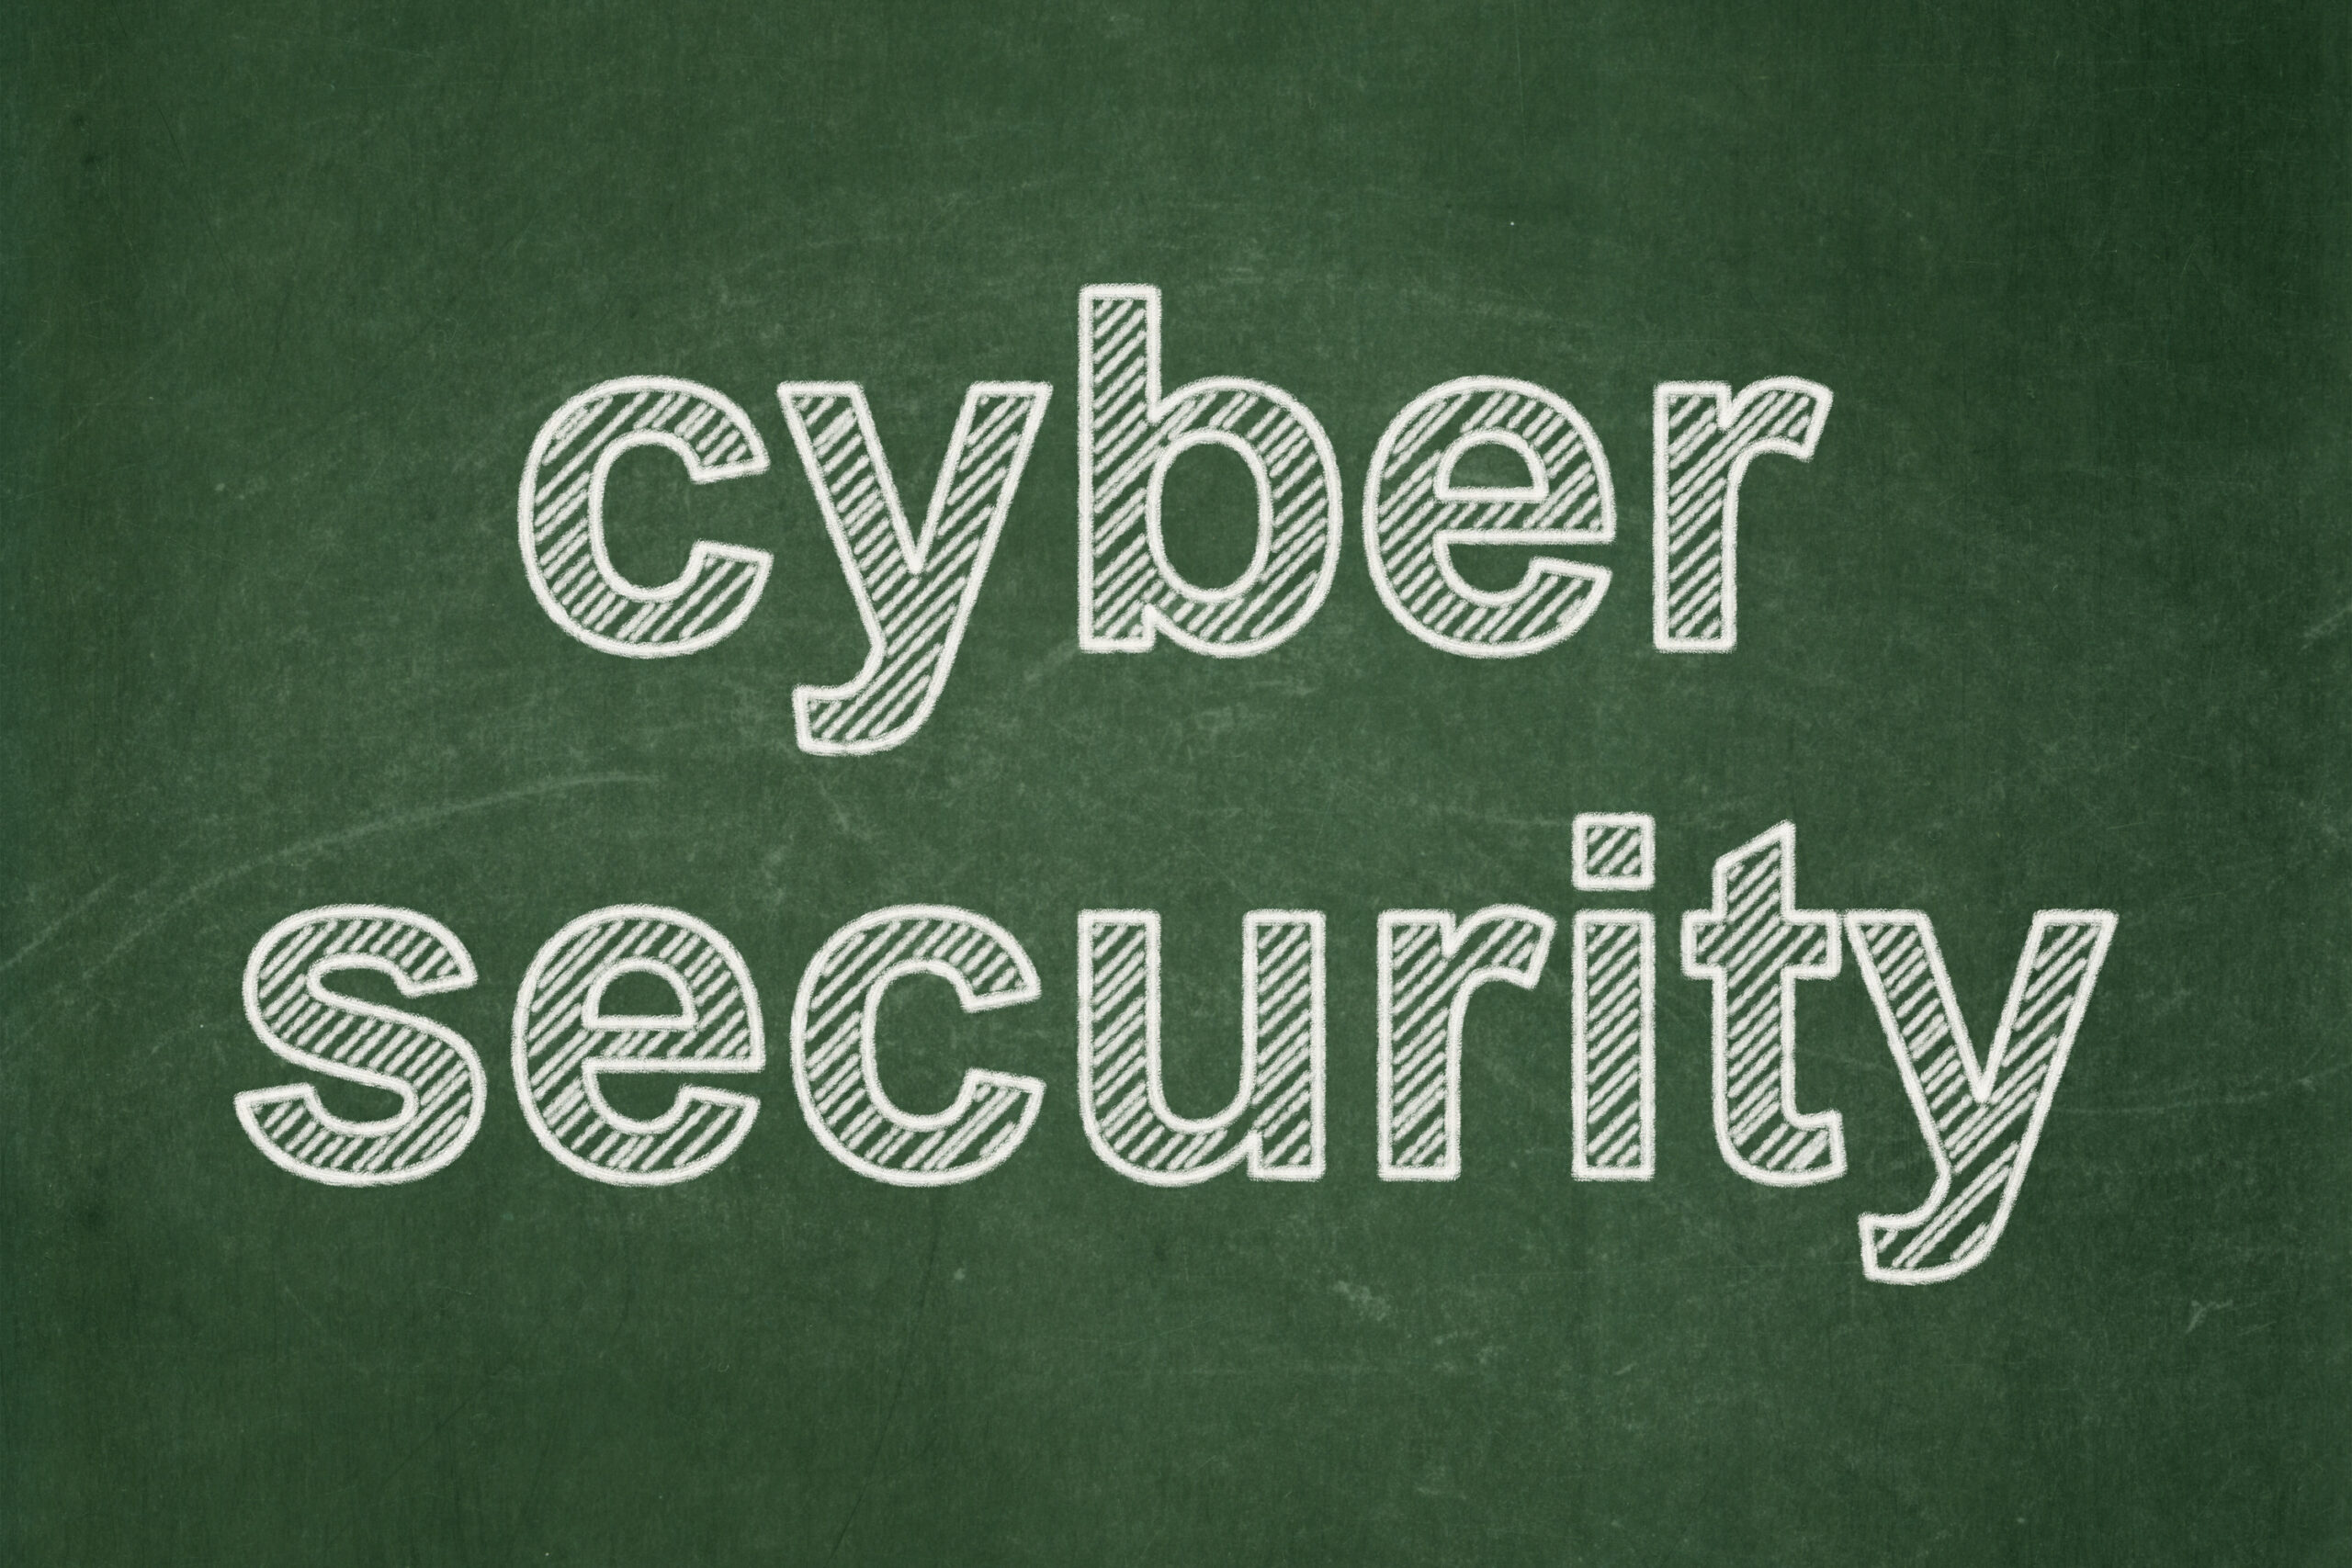 This months industry spotlight is cybersecurity!